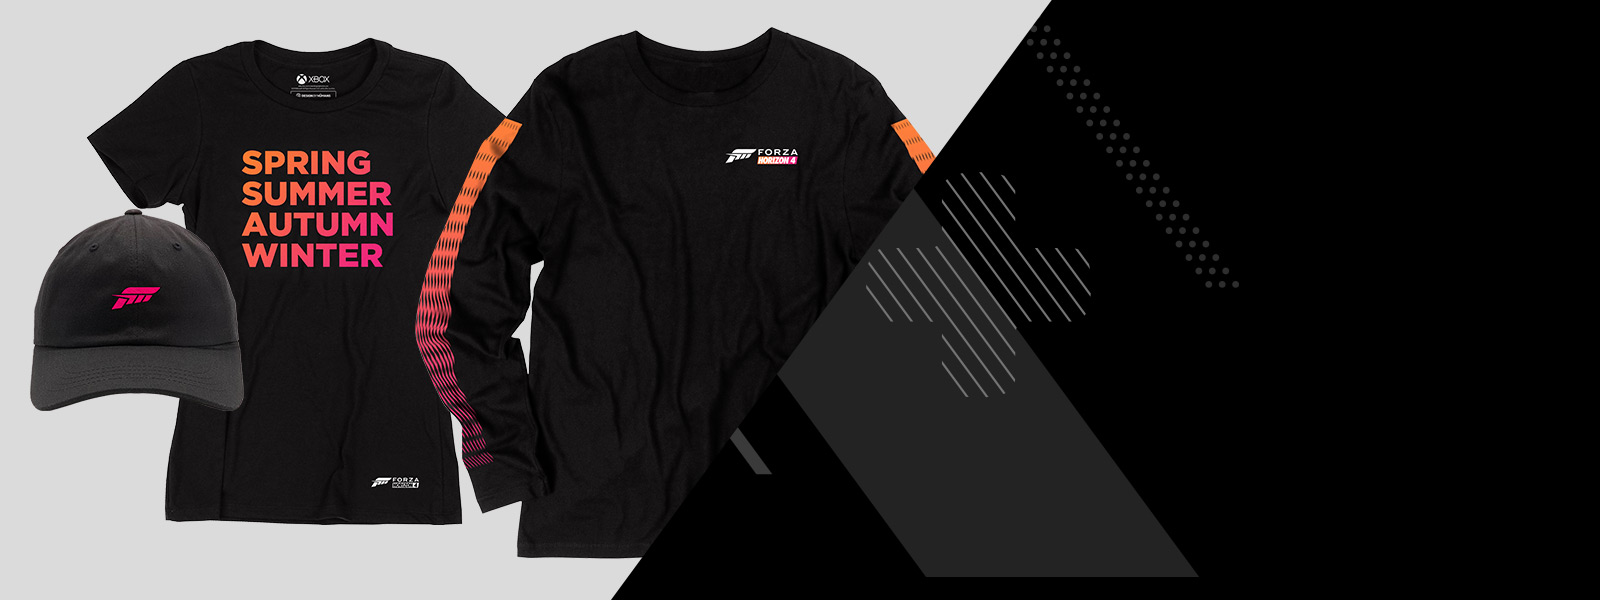 Black Forza Horizon 4 Long sleeve and short sleeve t-shirts, and a black hat with the Forza logo, beside a stylized xbox controller background